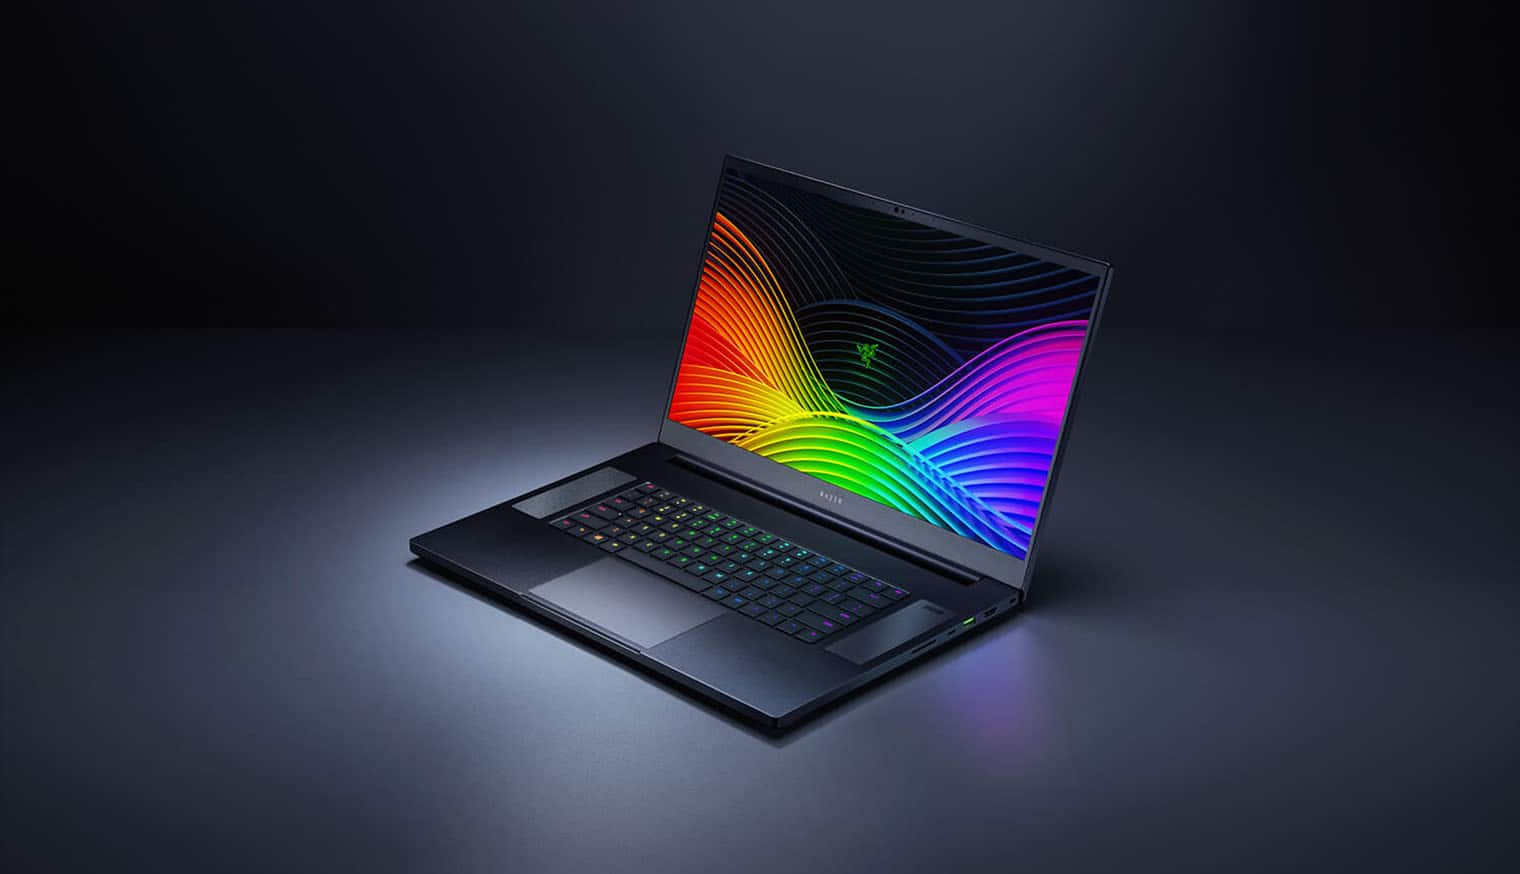 razer blade pro 17 4k 2019 featured